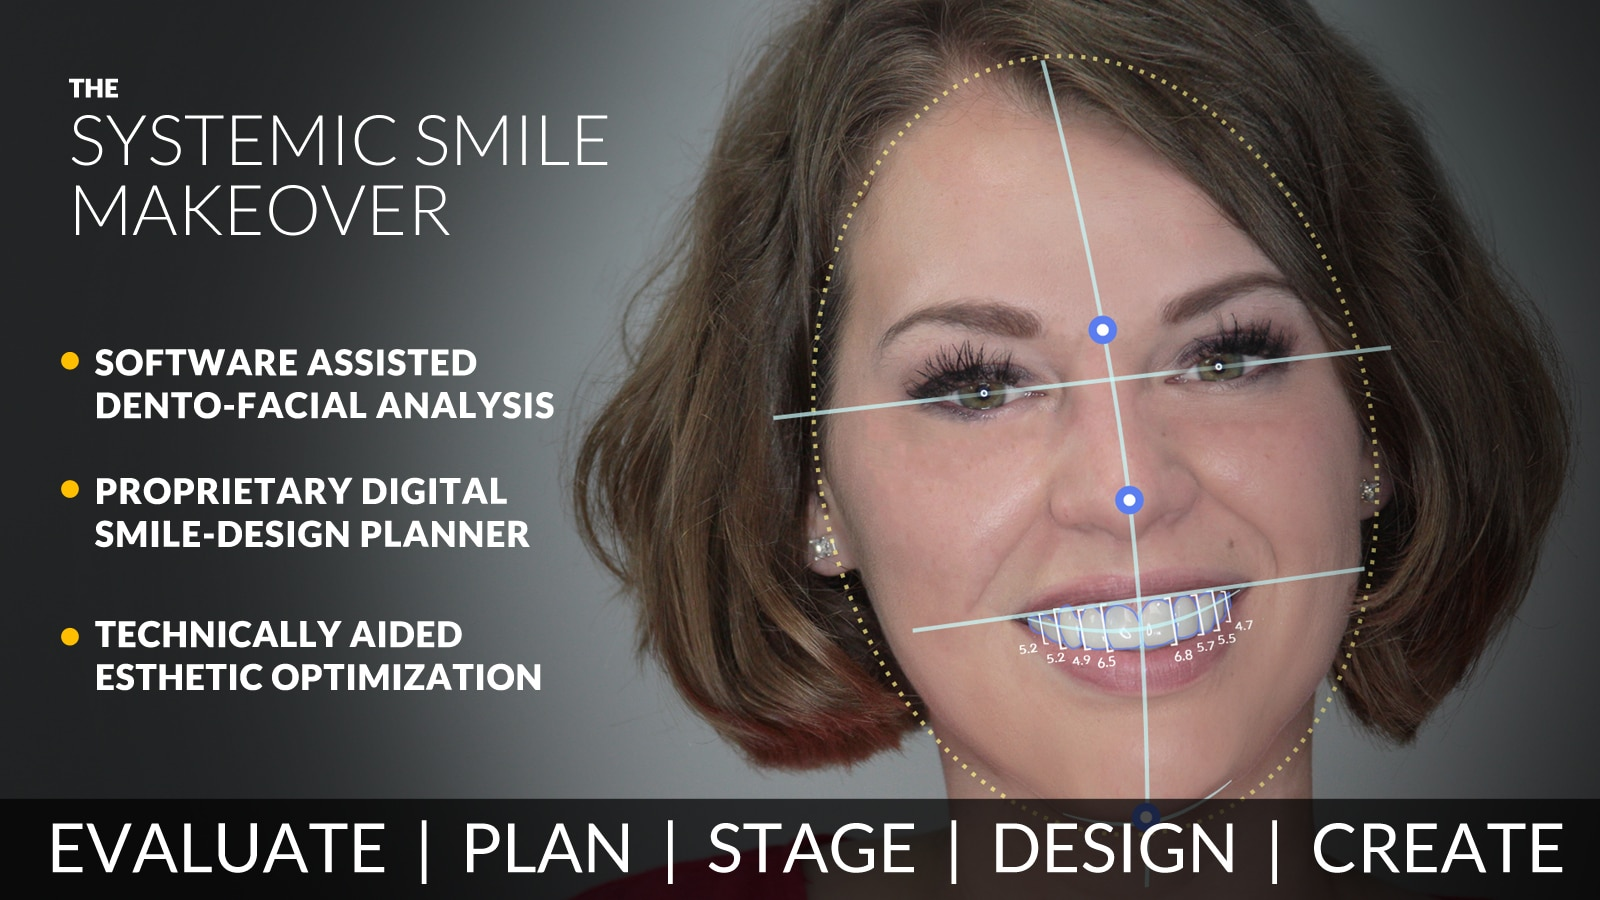 The Systemic Smile Makeover: Evaluate - Plan - Stage - Design - Create